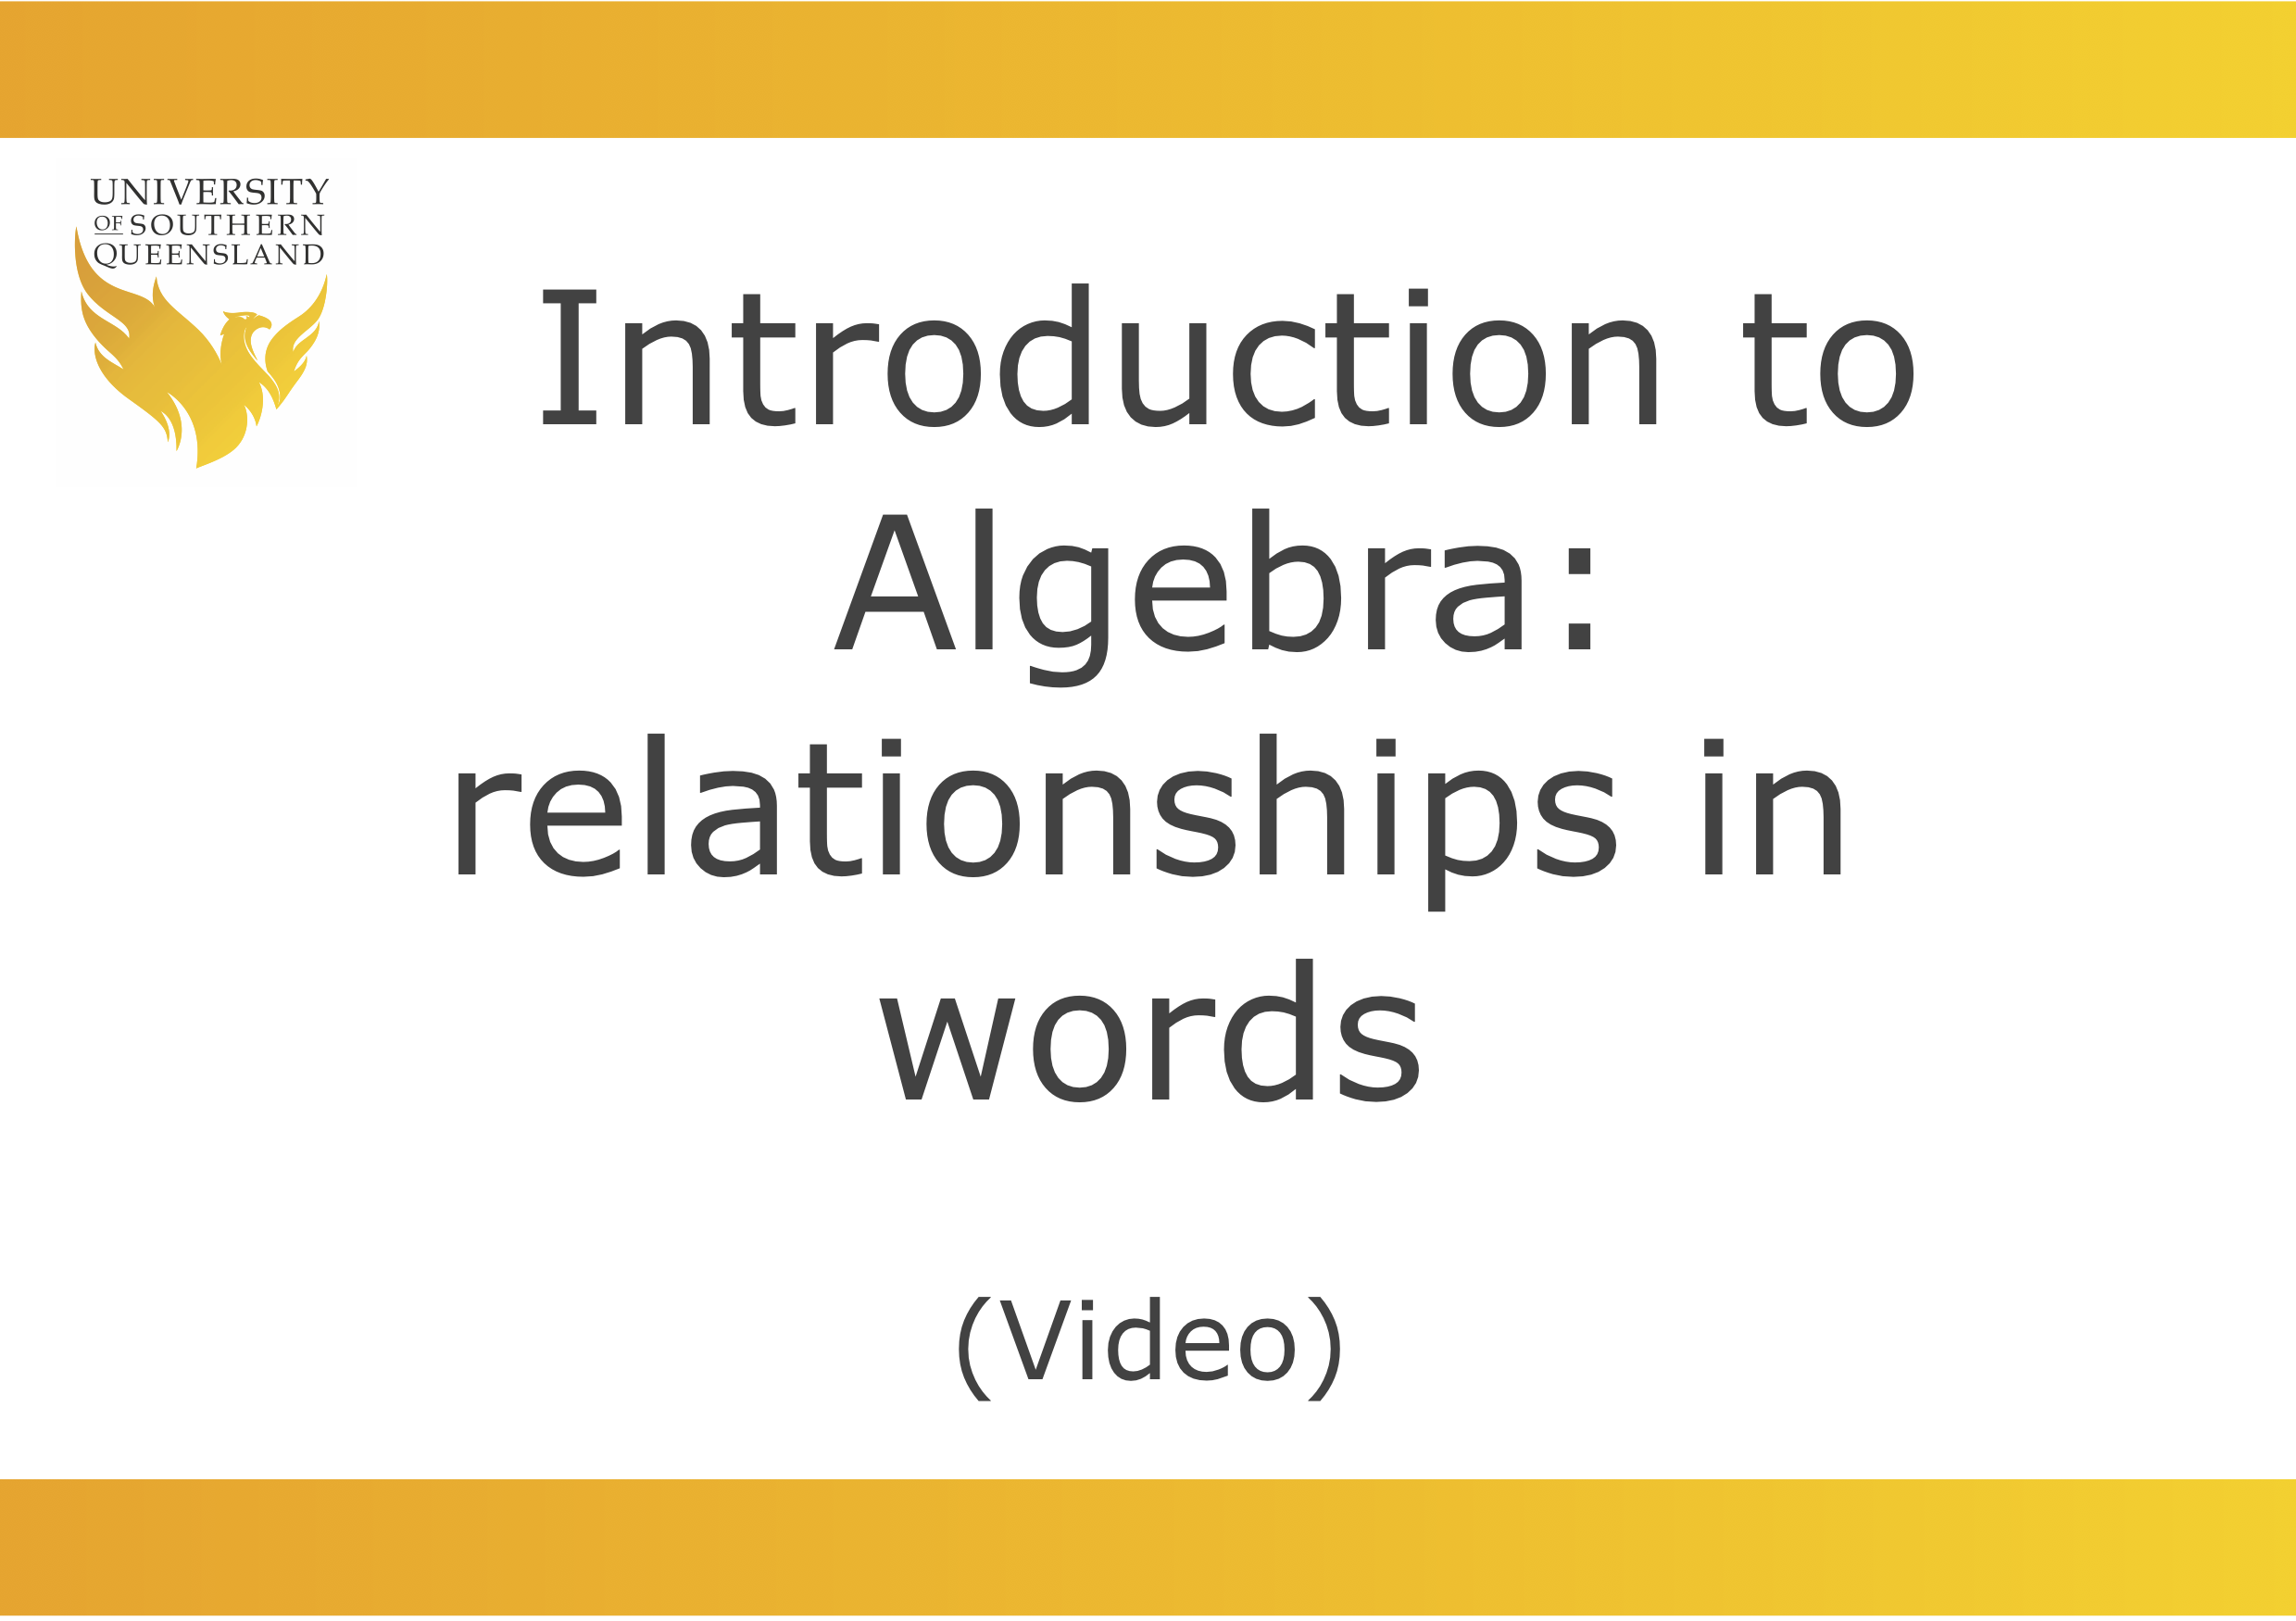 image as a link to video to introduction to algebra: Relationships as words